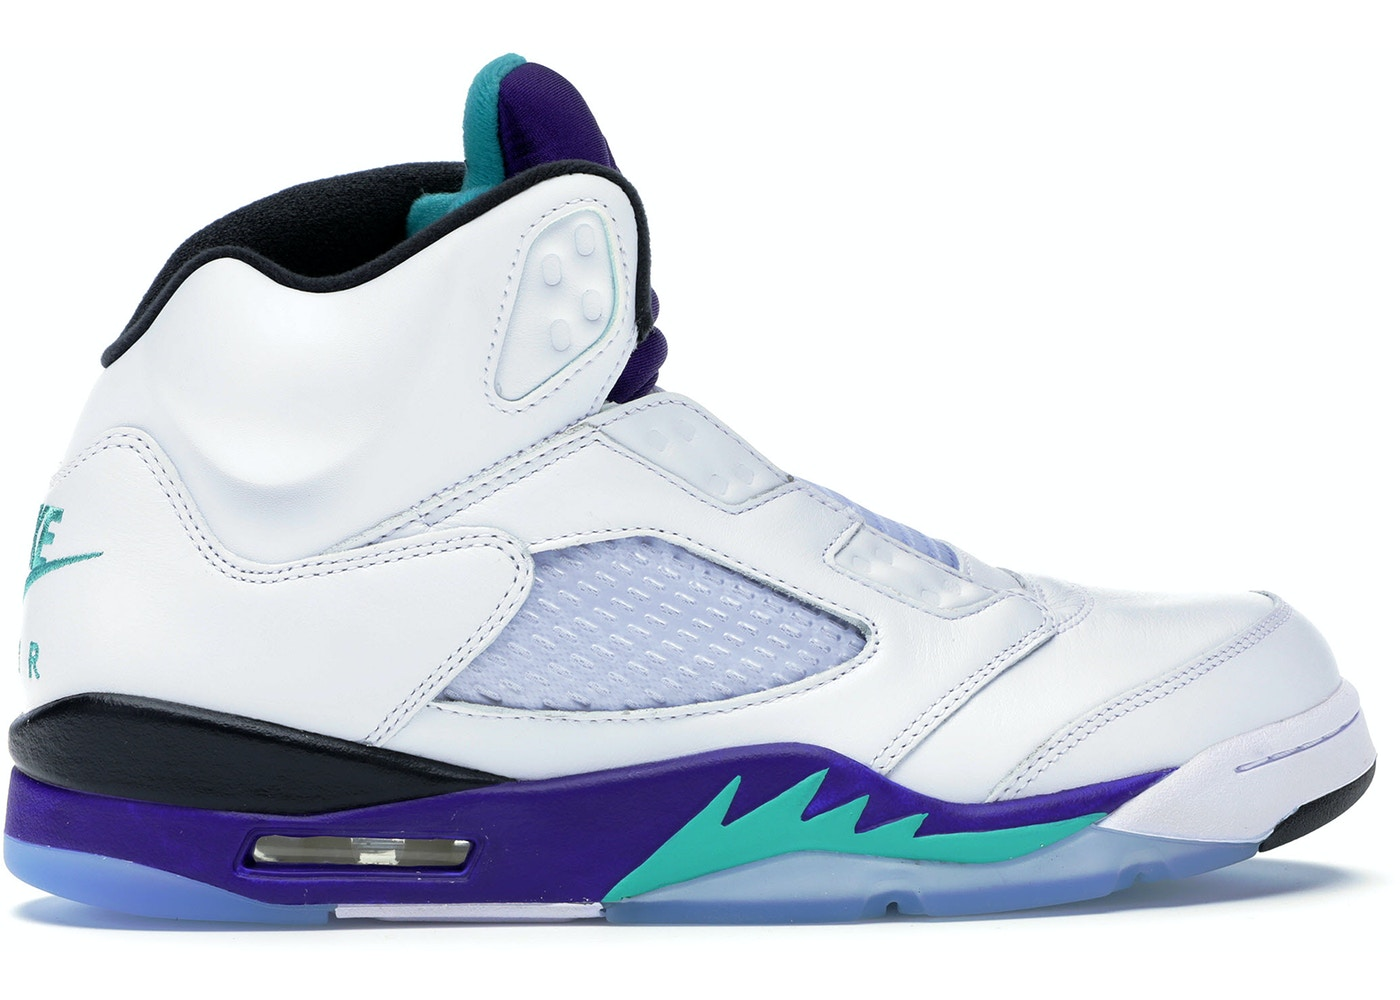 new concept b6ee0 96b34 Jordan 5 Retro Grape Fresh Prince